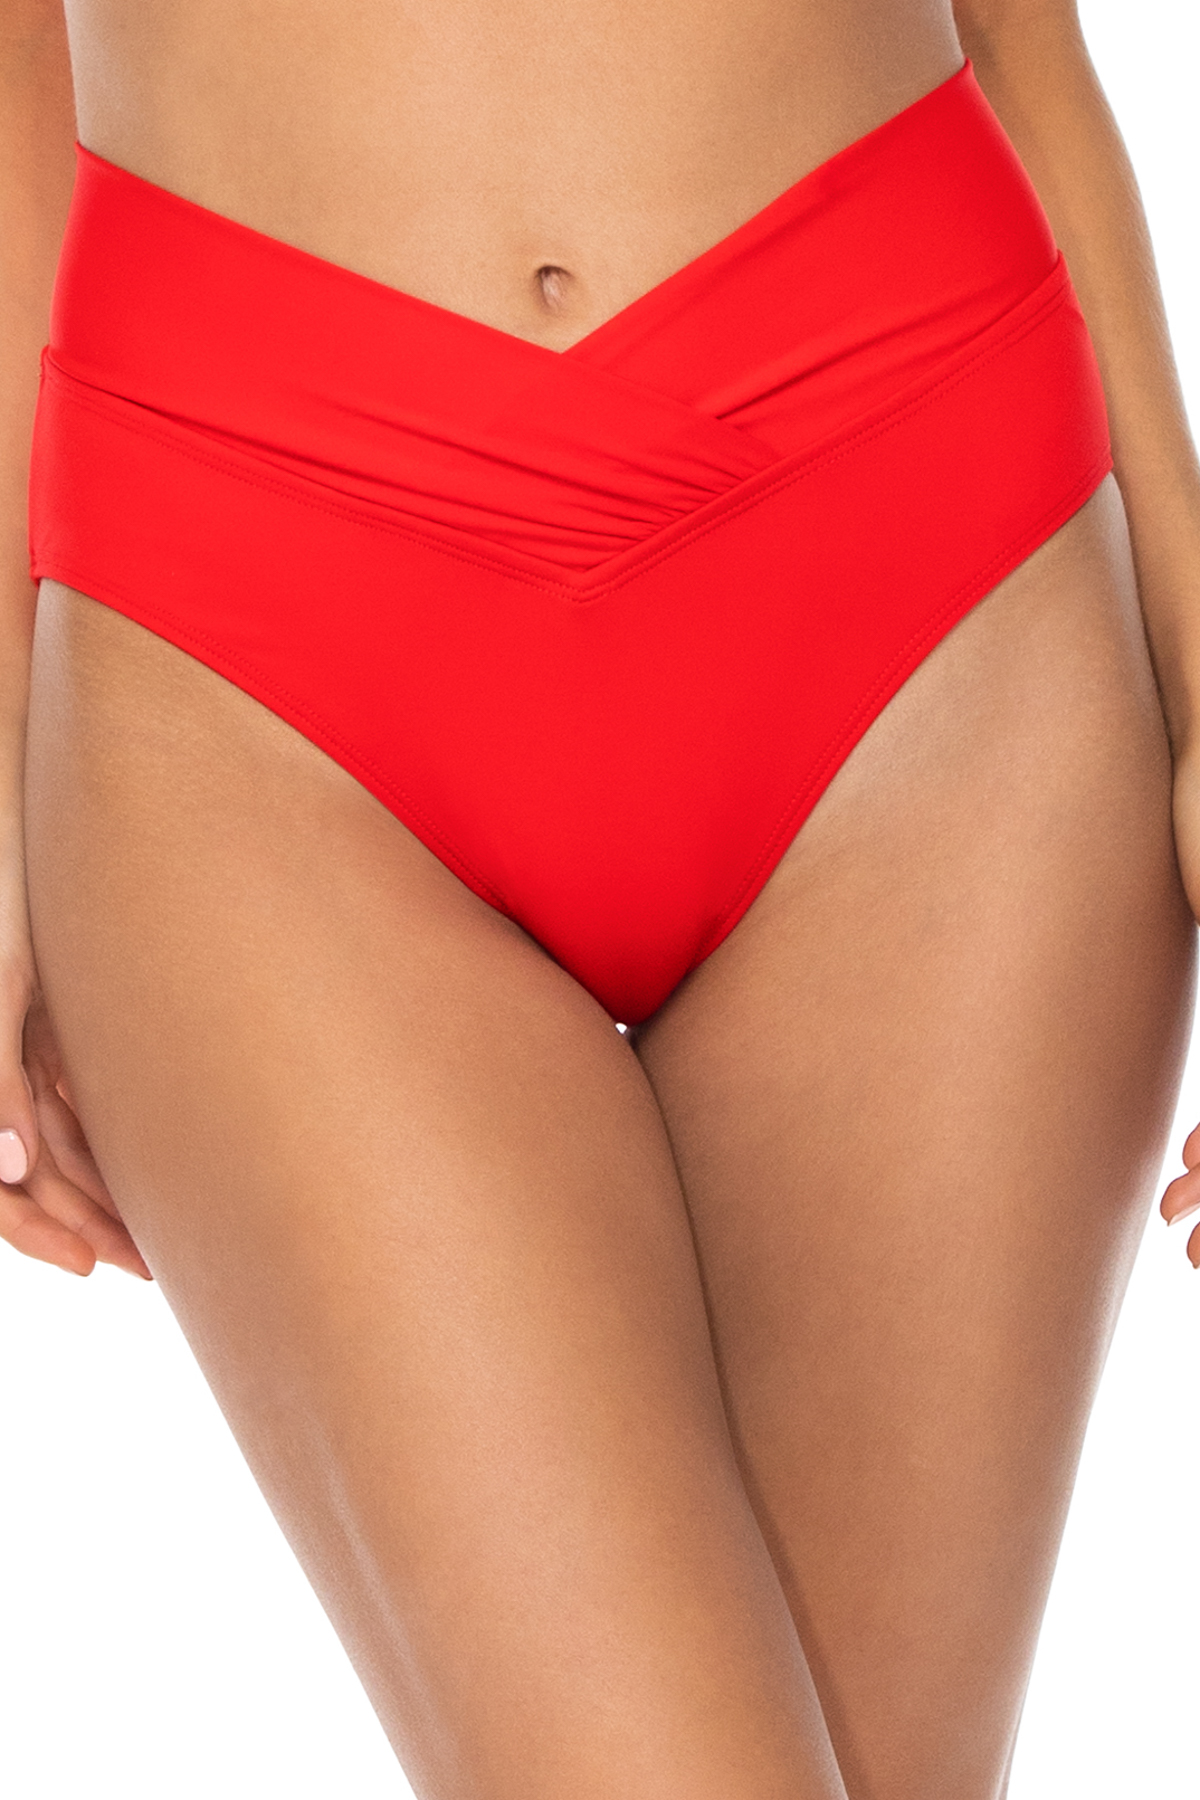 Summer Lovin' V-Front Banded High Waist Bikini Bottom - Scarlet 1